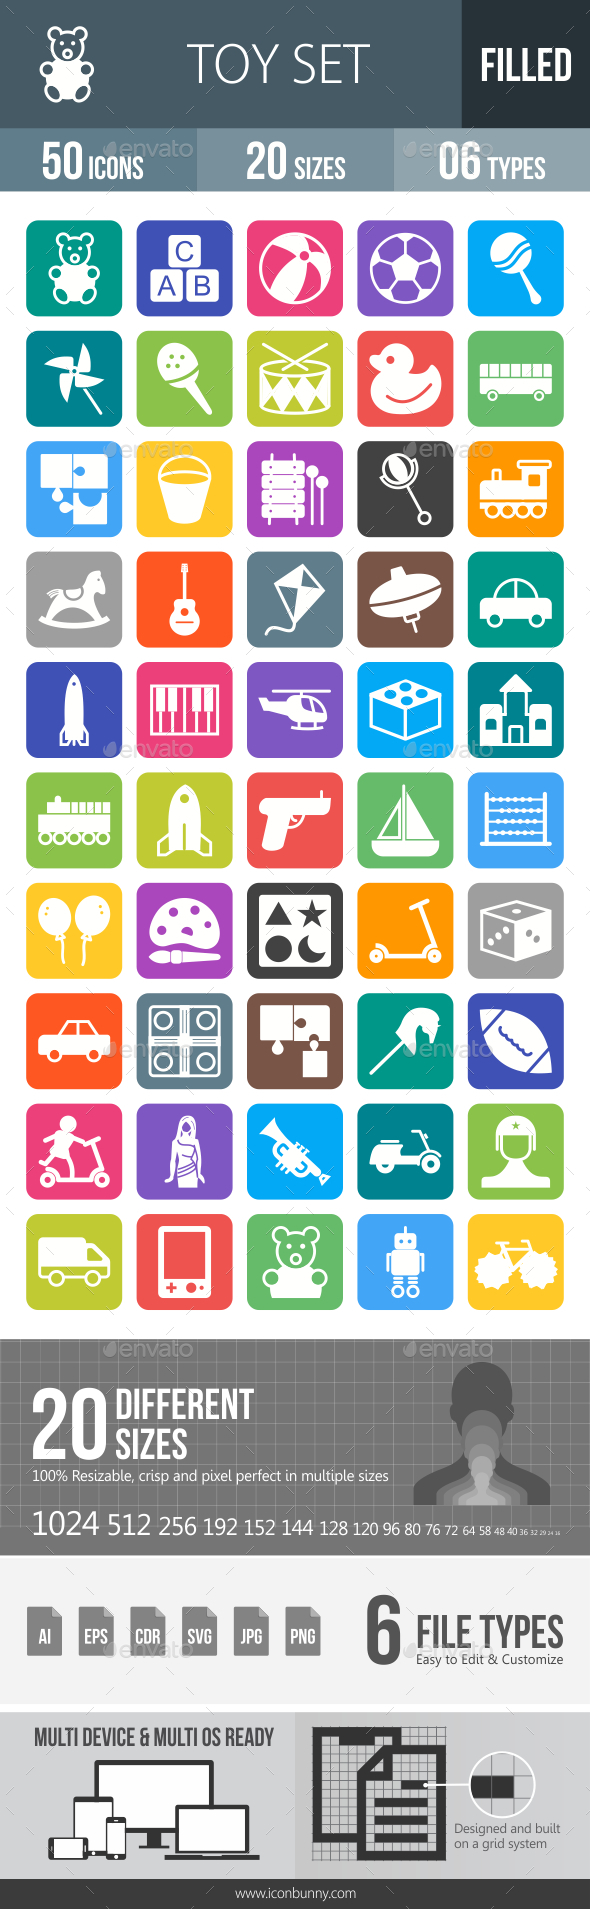 50 Toy Set Filled Round Corner Icons - Icons